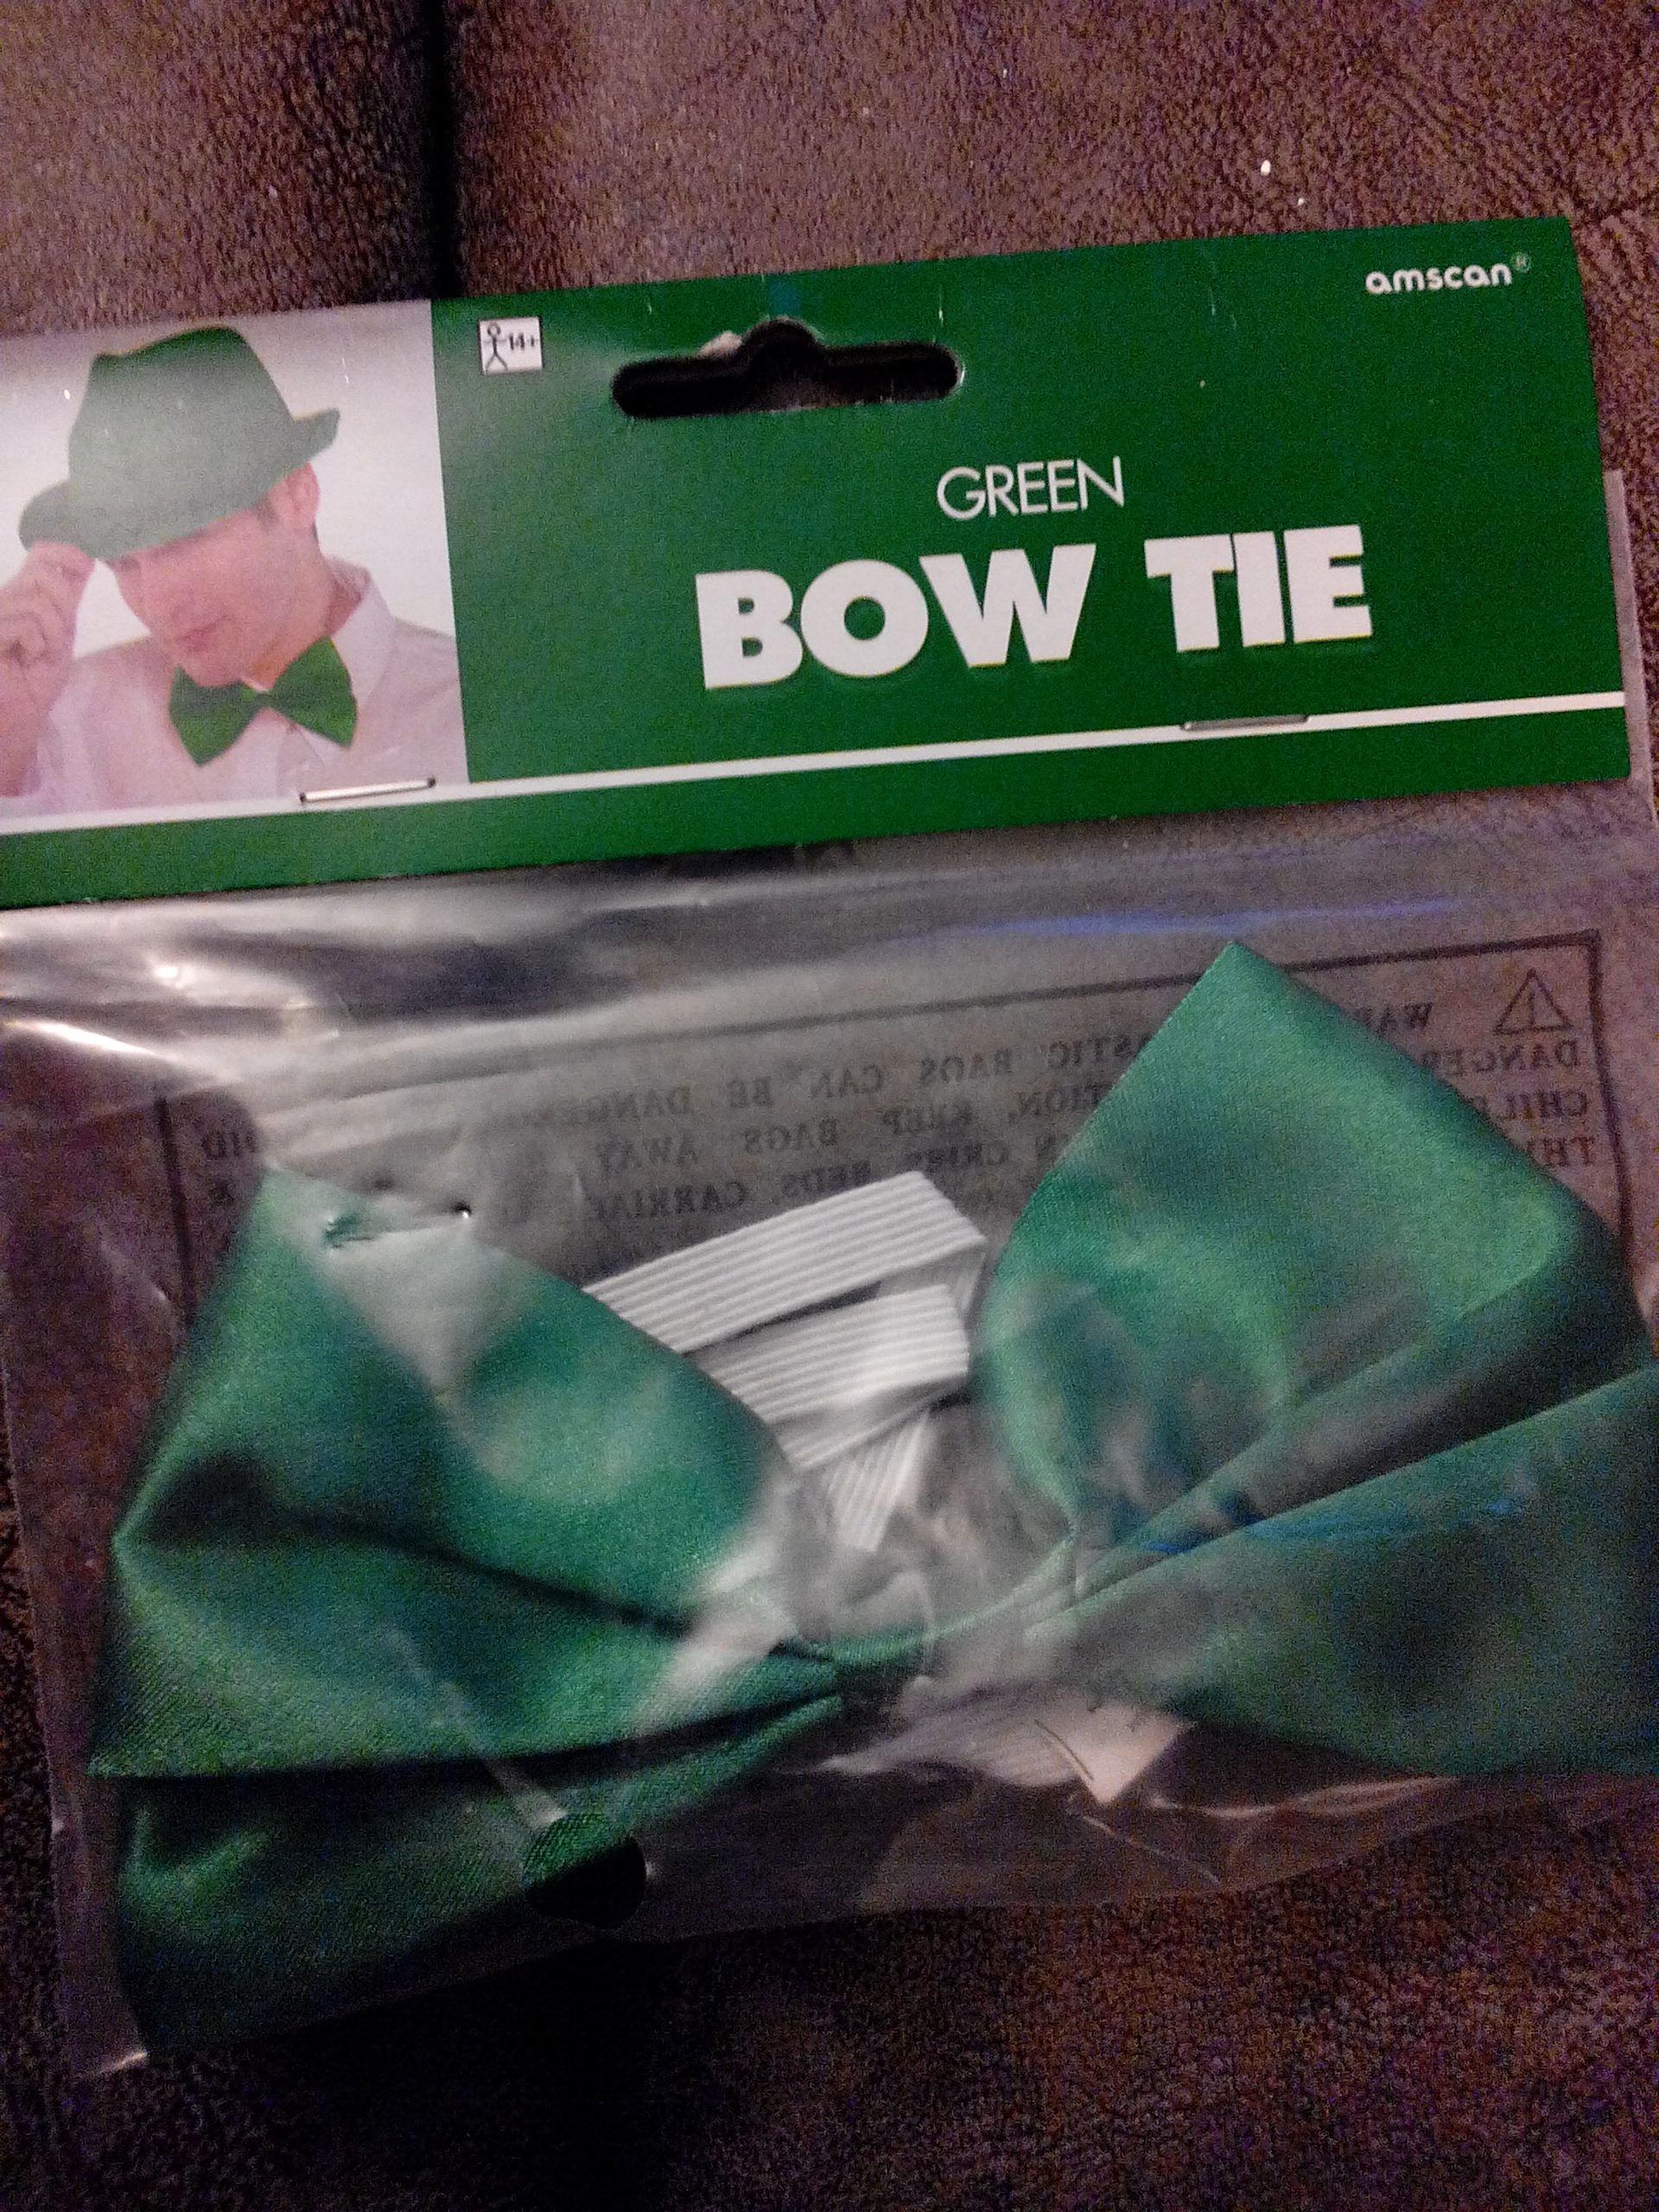 Green Bow Tie Ornament - amscan front image (front cover)